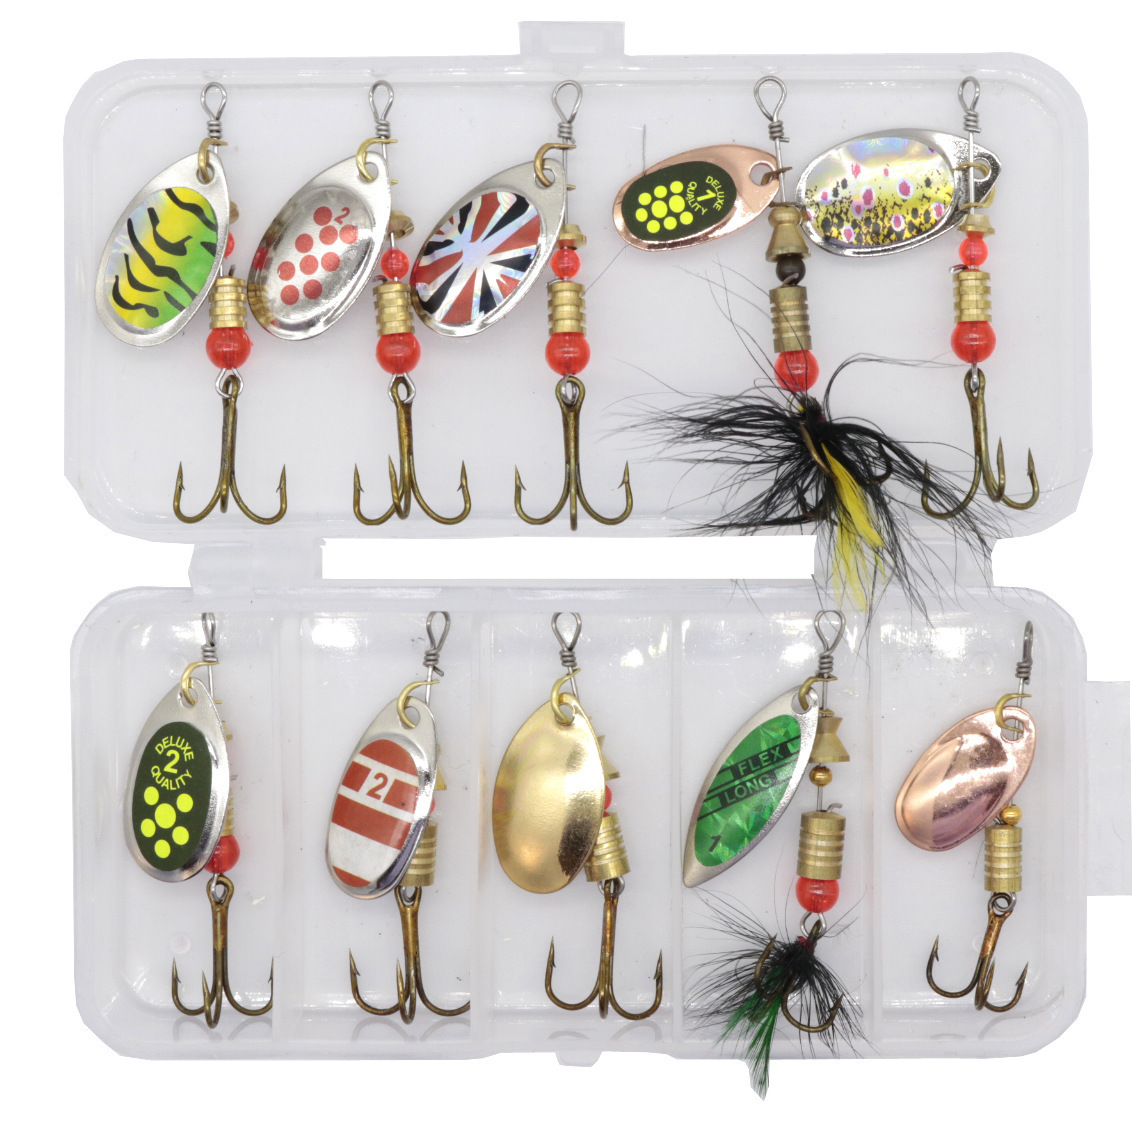 Metal Spoon Spinner Bait 2.5-4.4g Feather Hooks Sequin Sea Fishing Lure Isca Artificial Paillette Wobbler Jig Metal Buzz Bait(China)